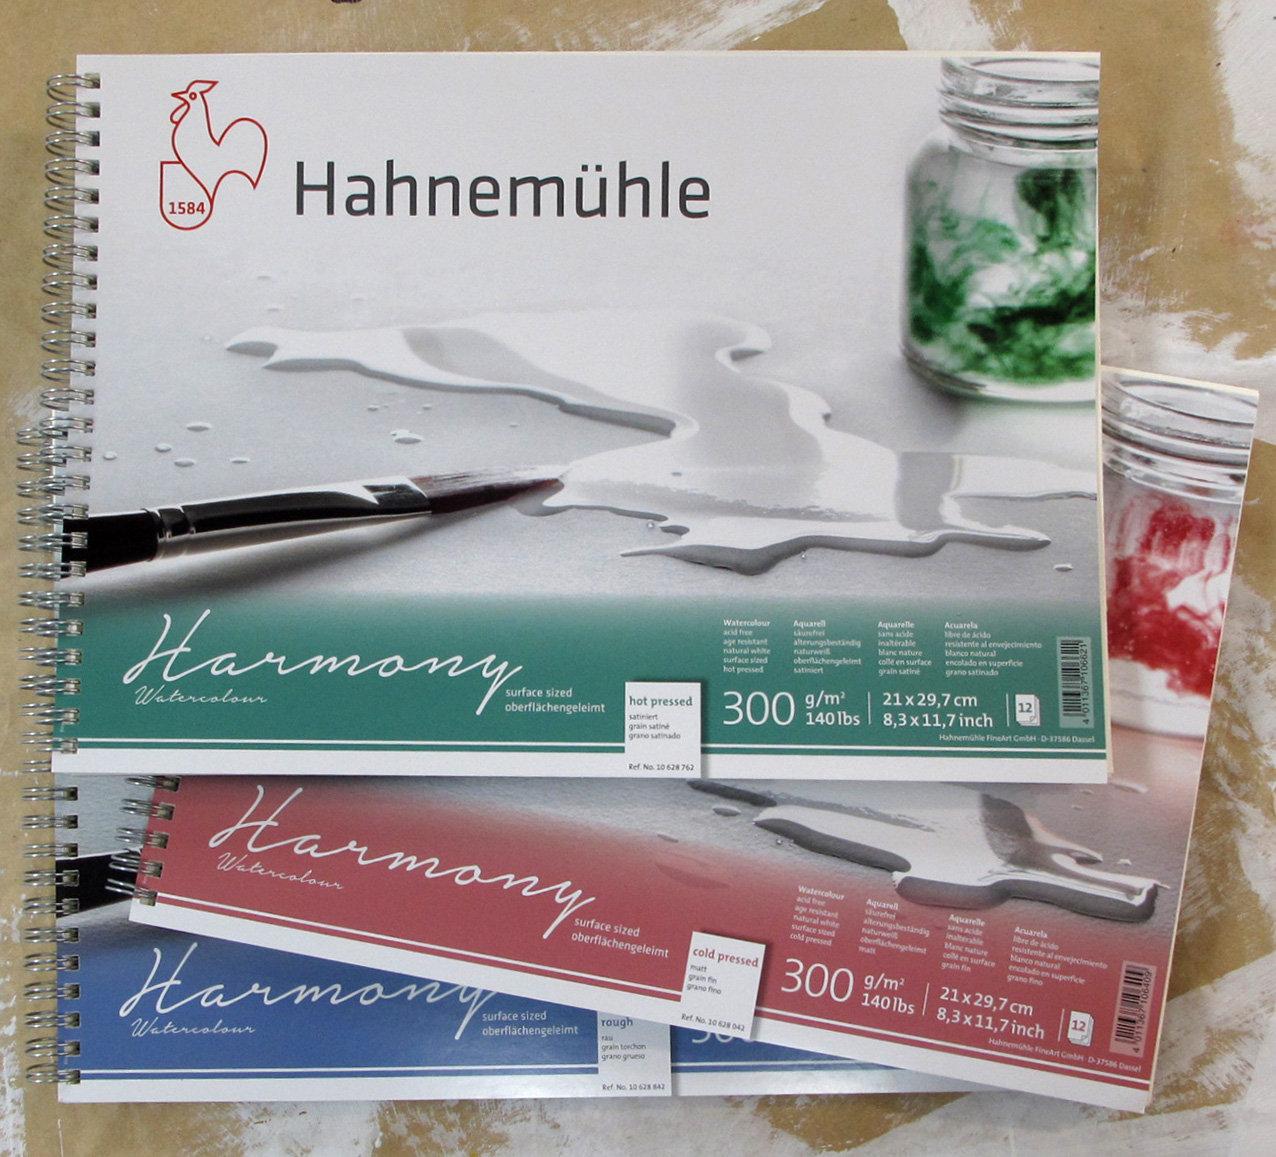 Hahnemuhle Harmony Watercolour Spiral Pad Hot Pressed A4